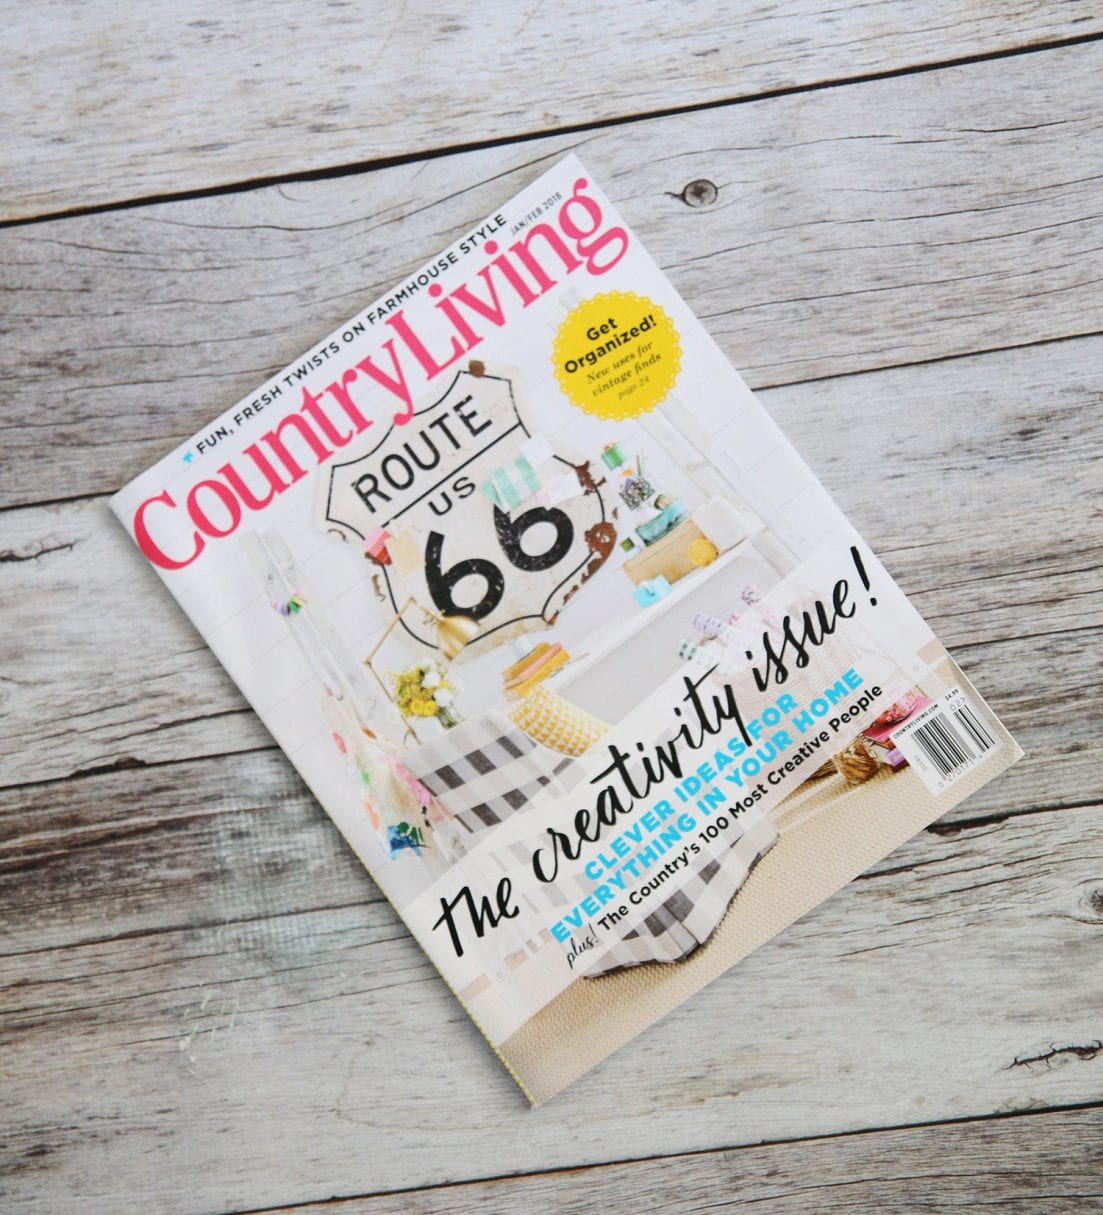 country living's creativity issue - magazine cover